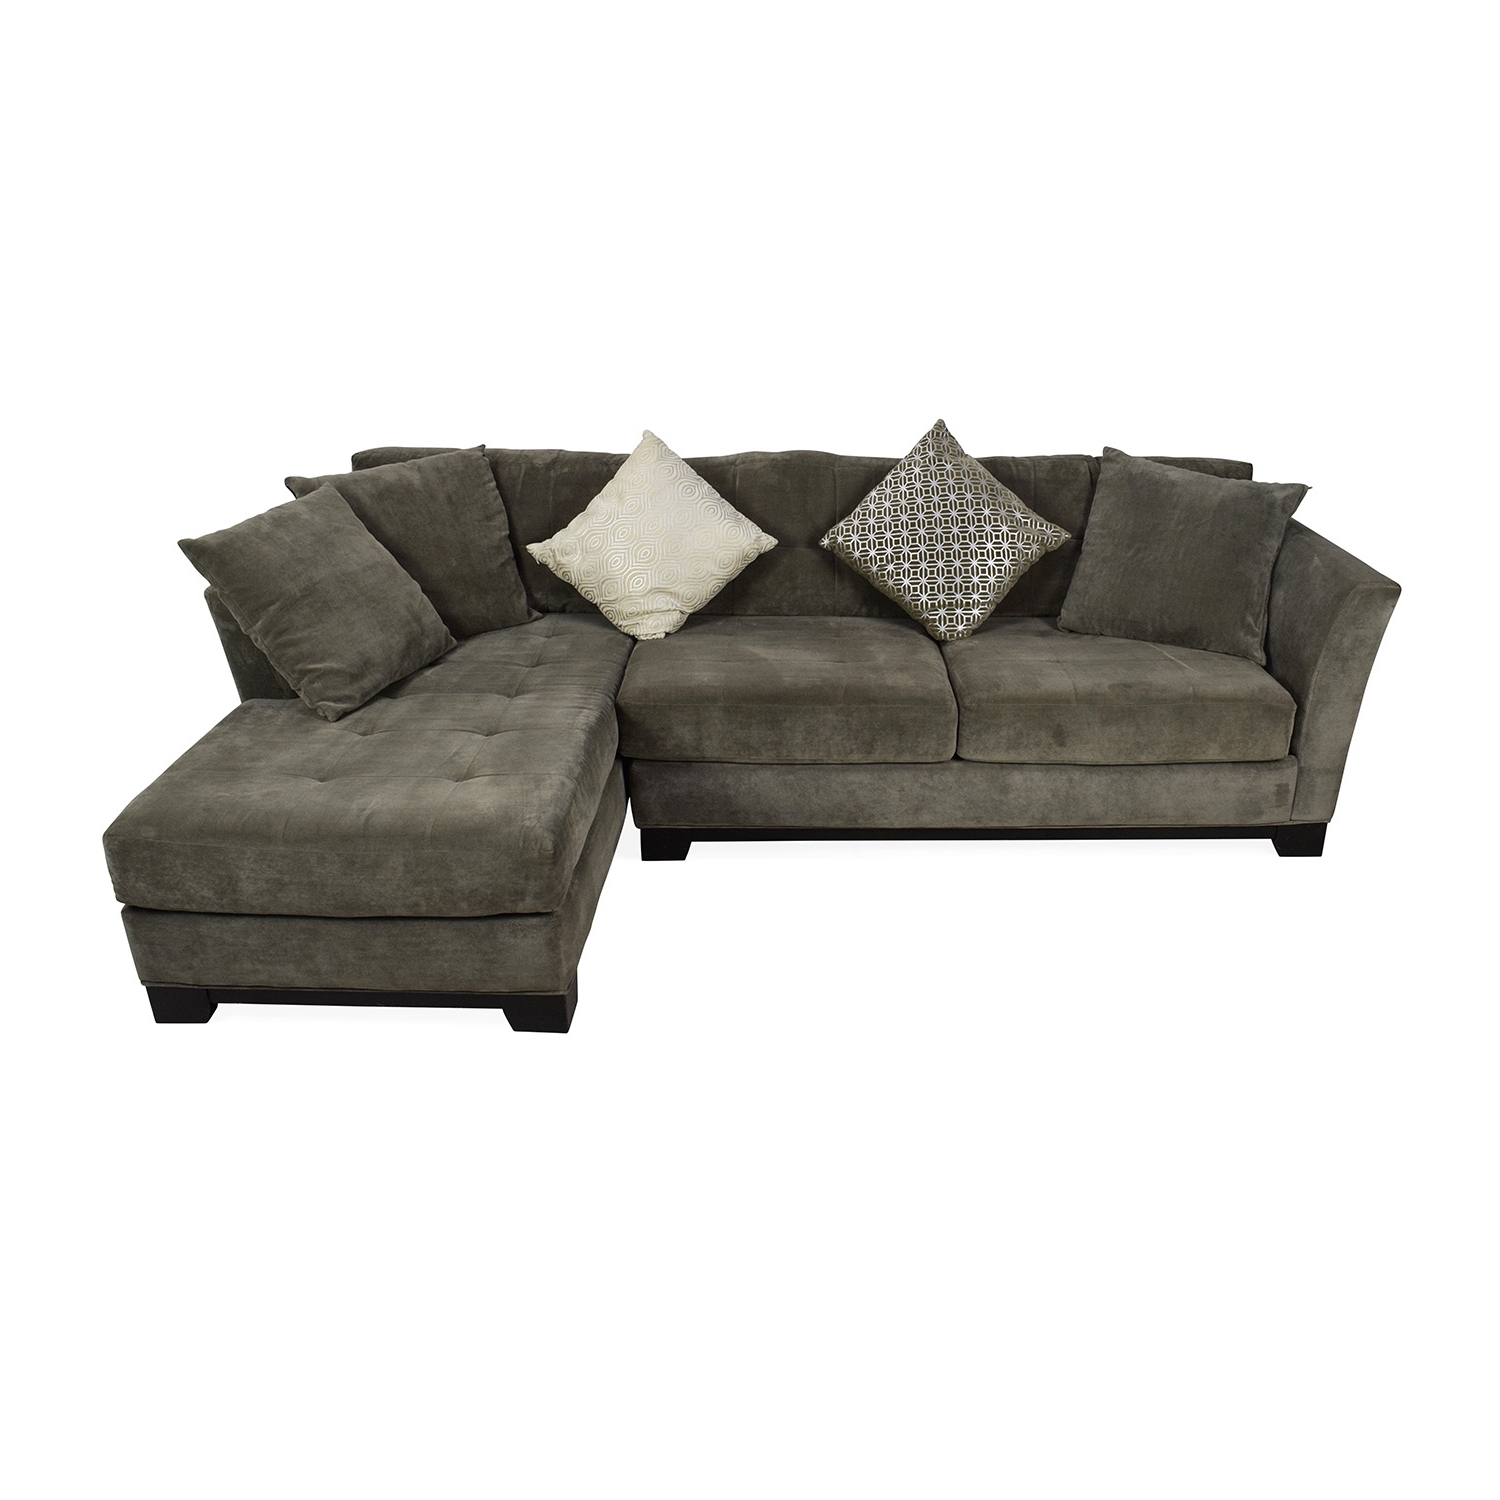 [%50% Off – Macy's Macy's Gray Sectional Couch With Chaise / Sofas With 2019 Macys Sofas|macys Sofas Throughout Latest 50% Off – Macy's Macy's Gray Sectional Couch With Chaise / Sofas|most Current Macys Sofas Within 50% Off – Macy's Macy's Gray Sectional Couch With Chaise / Sofas|well Known 50% Off – Macy's Macy's Gray Sectional Couch With Chaise / Sofas Regarding Macys Sofas%] (View 10 of 20)